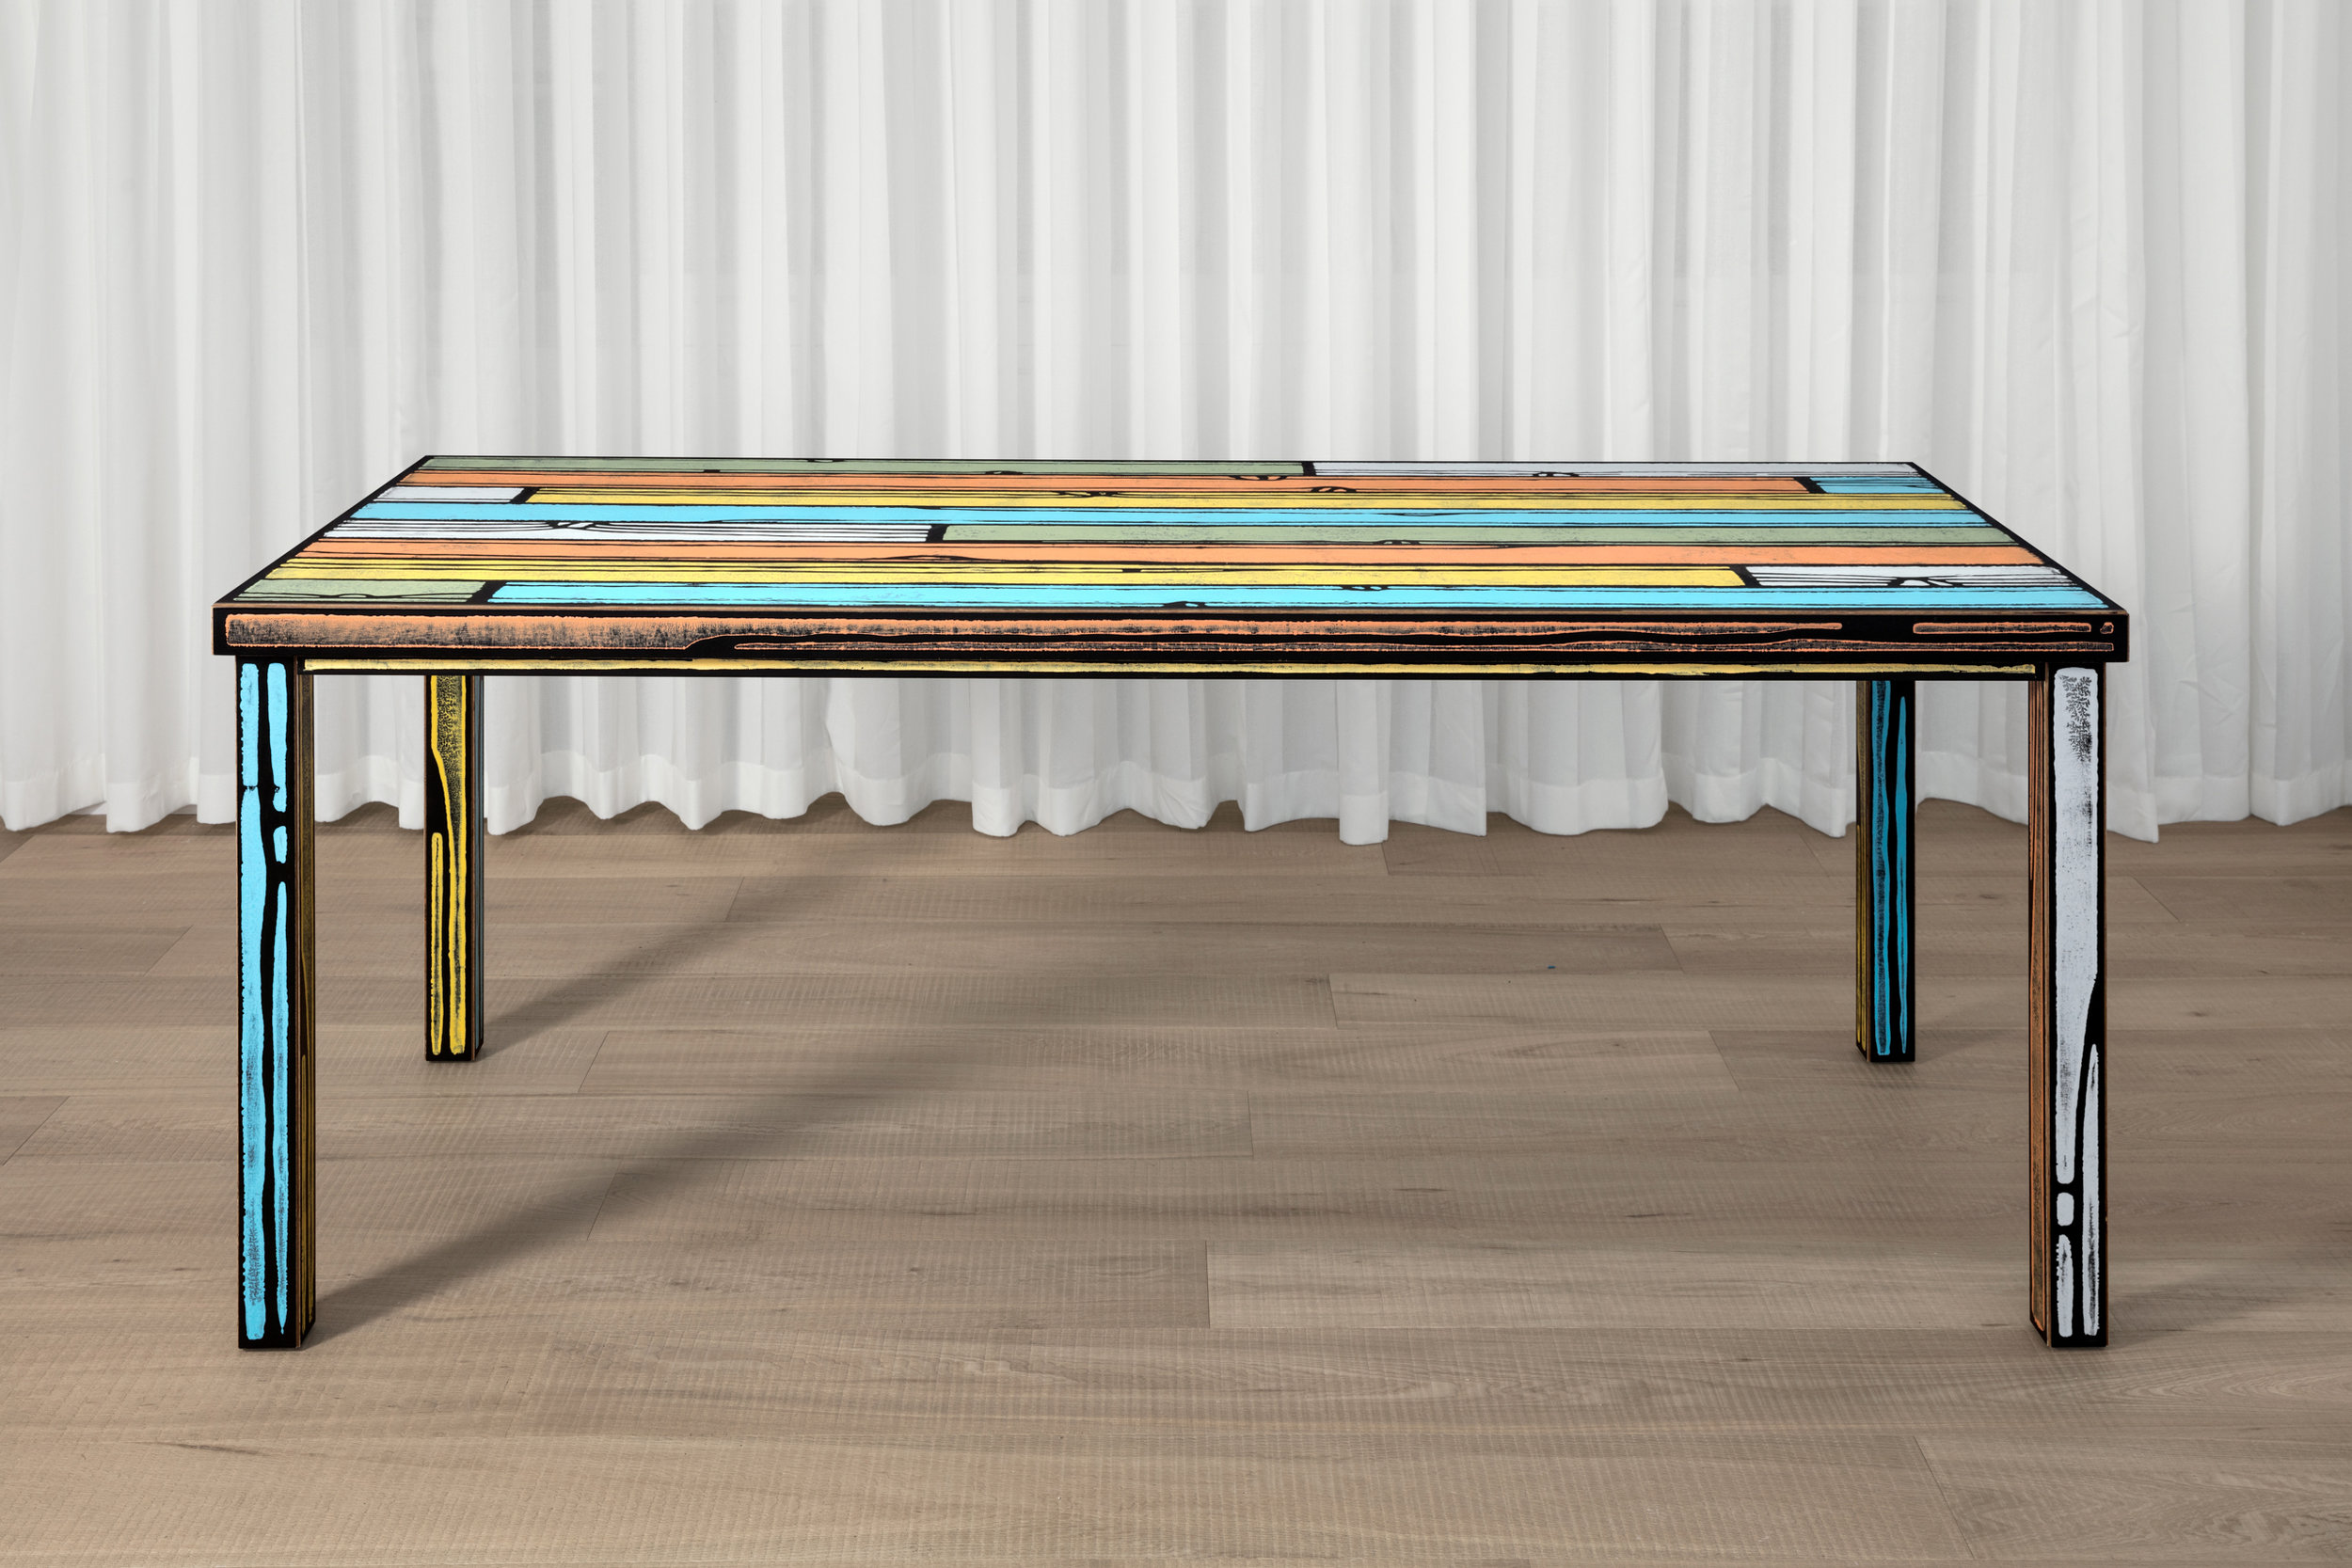 Wrongwoods  Table designed by Richard Woods and Sebastian Wrong